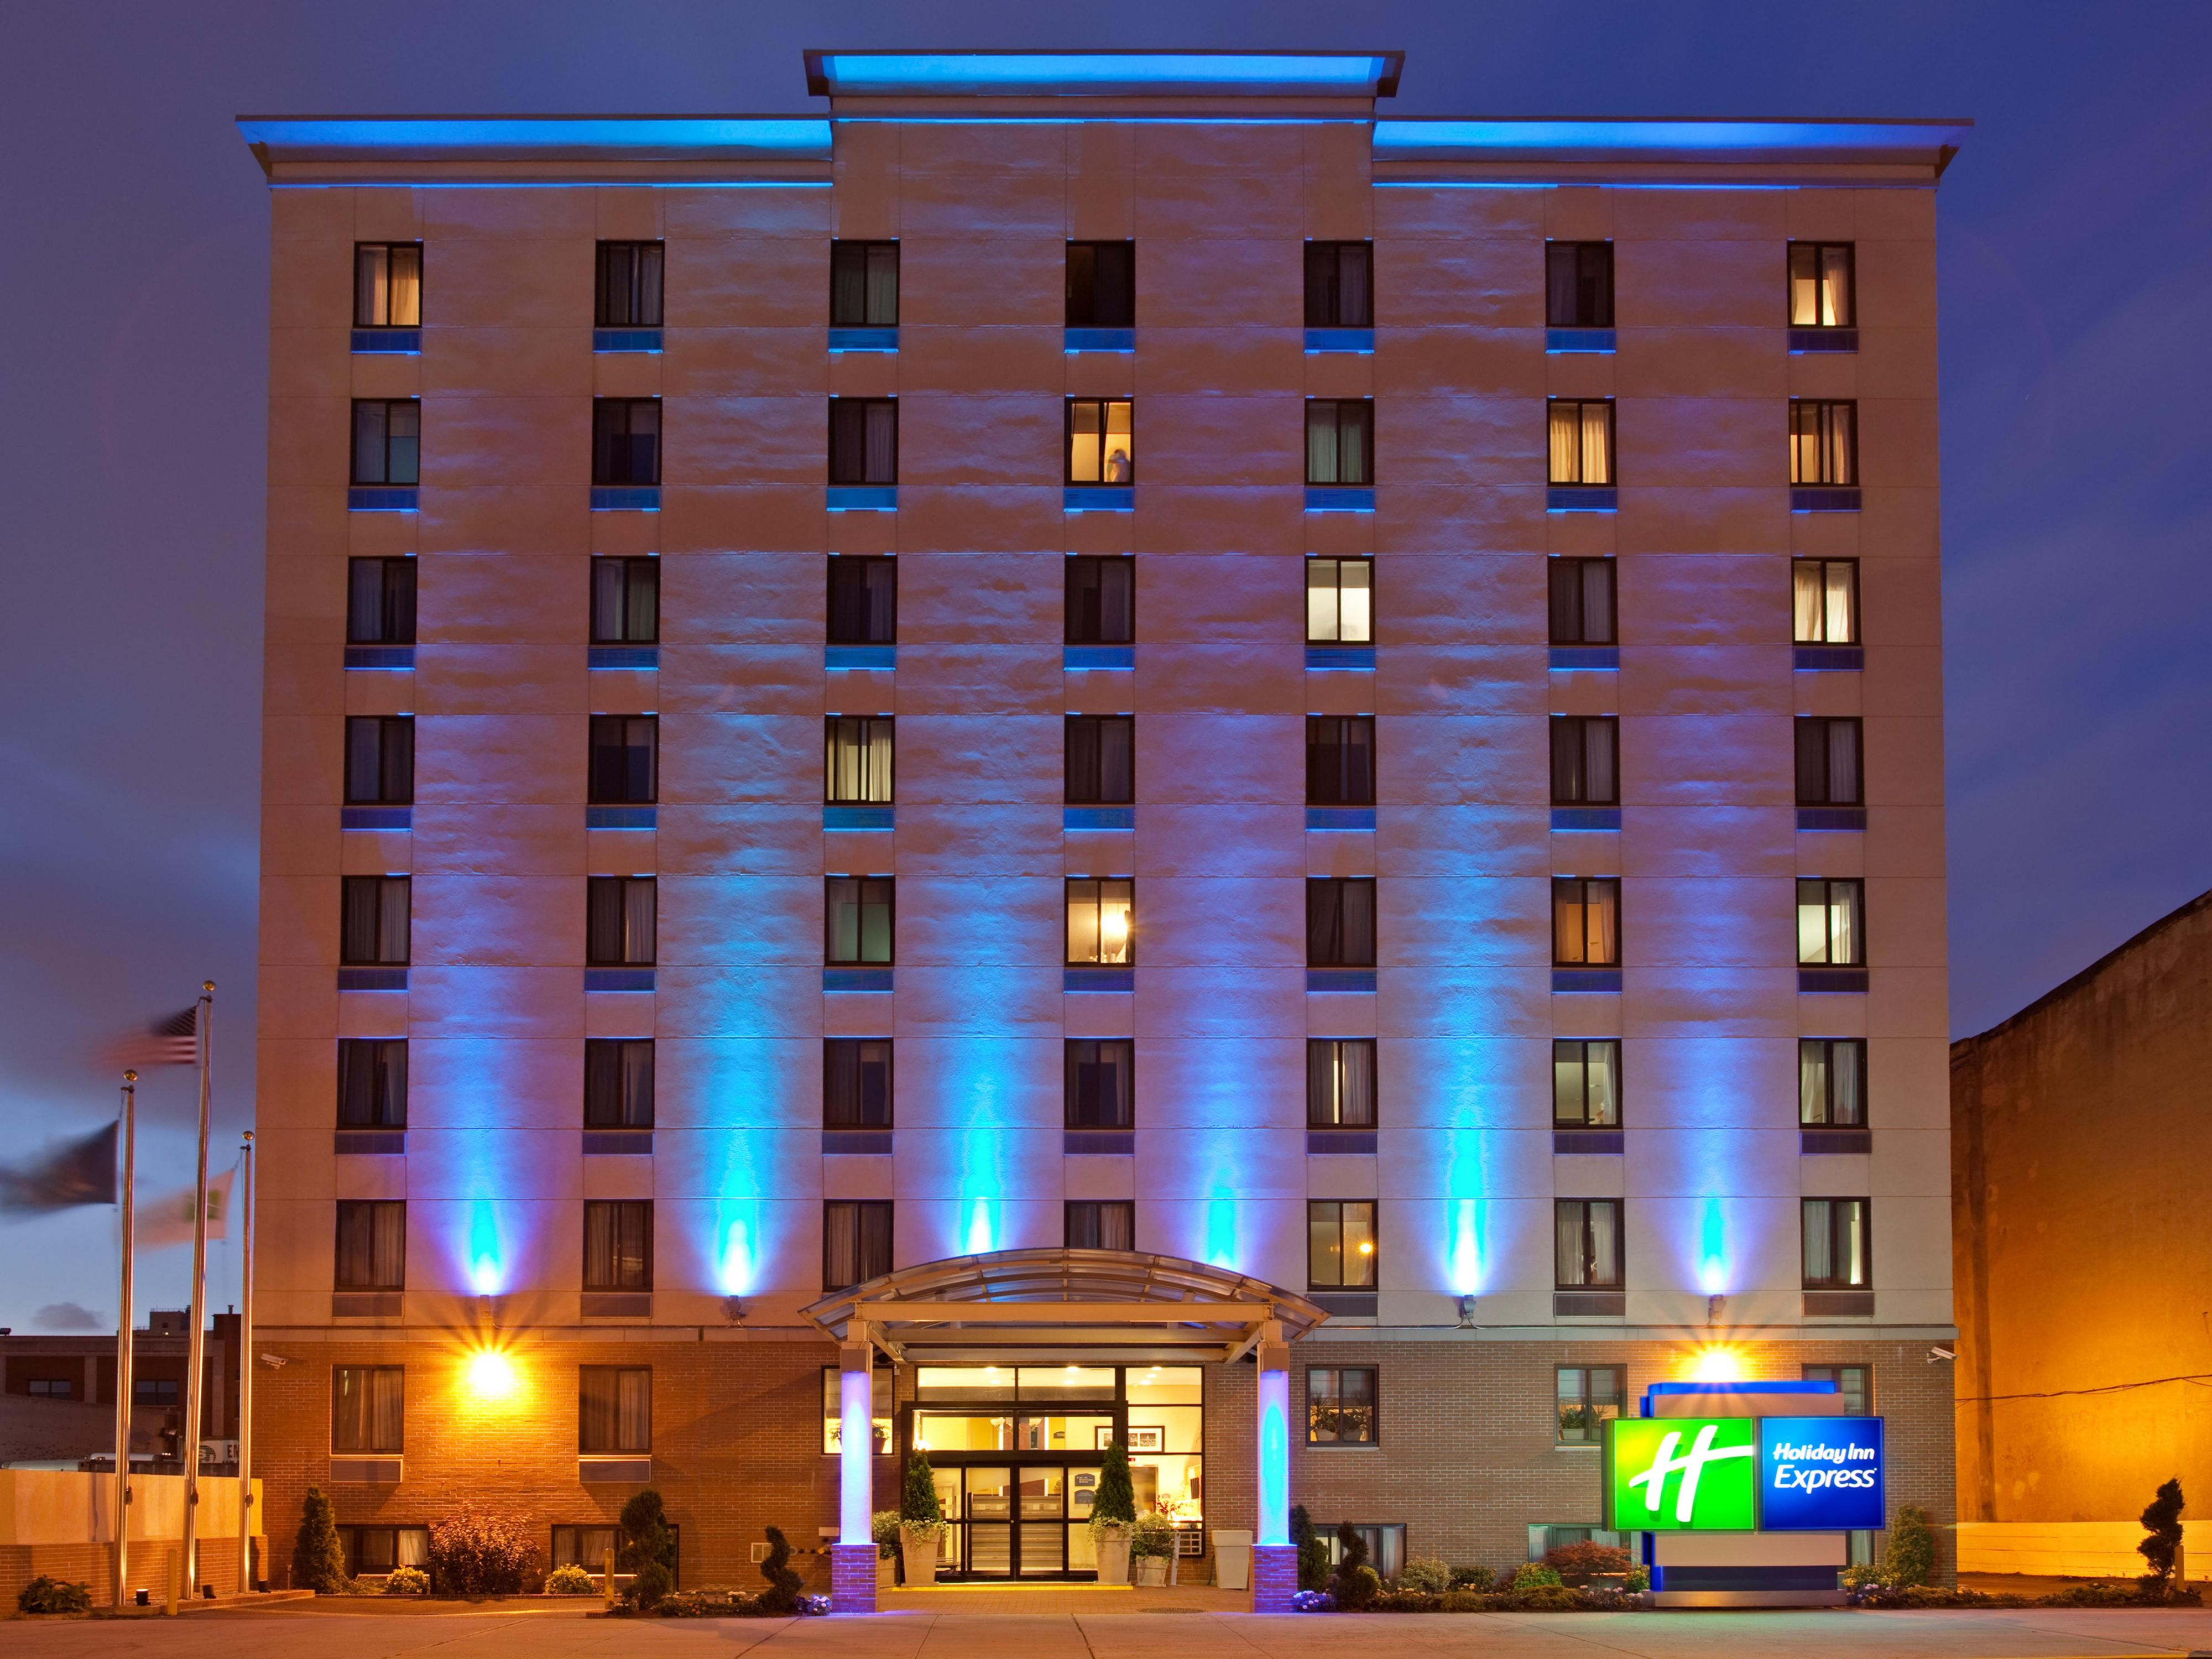 Holiday Inn Express Union St. (hotel exterior)